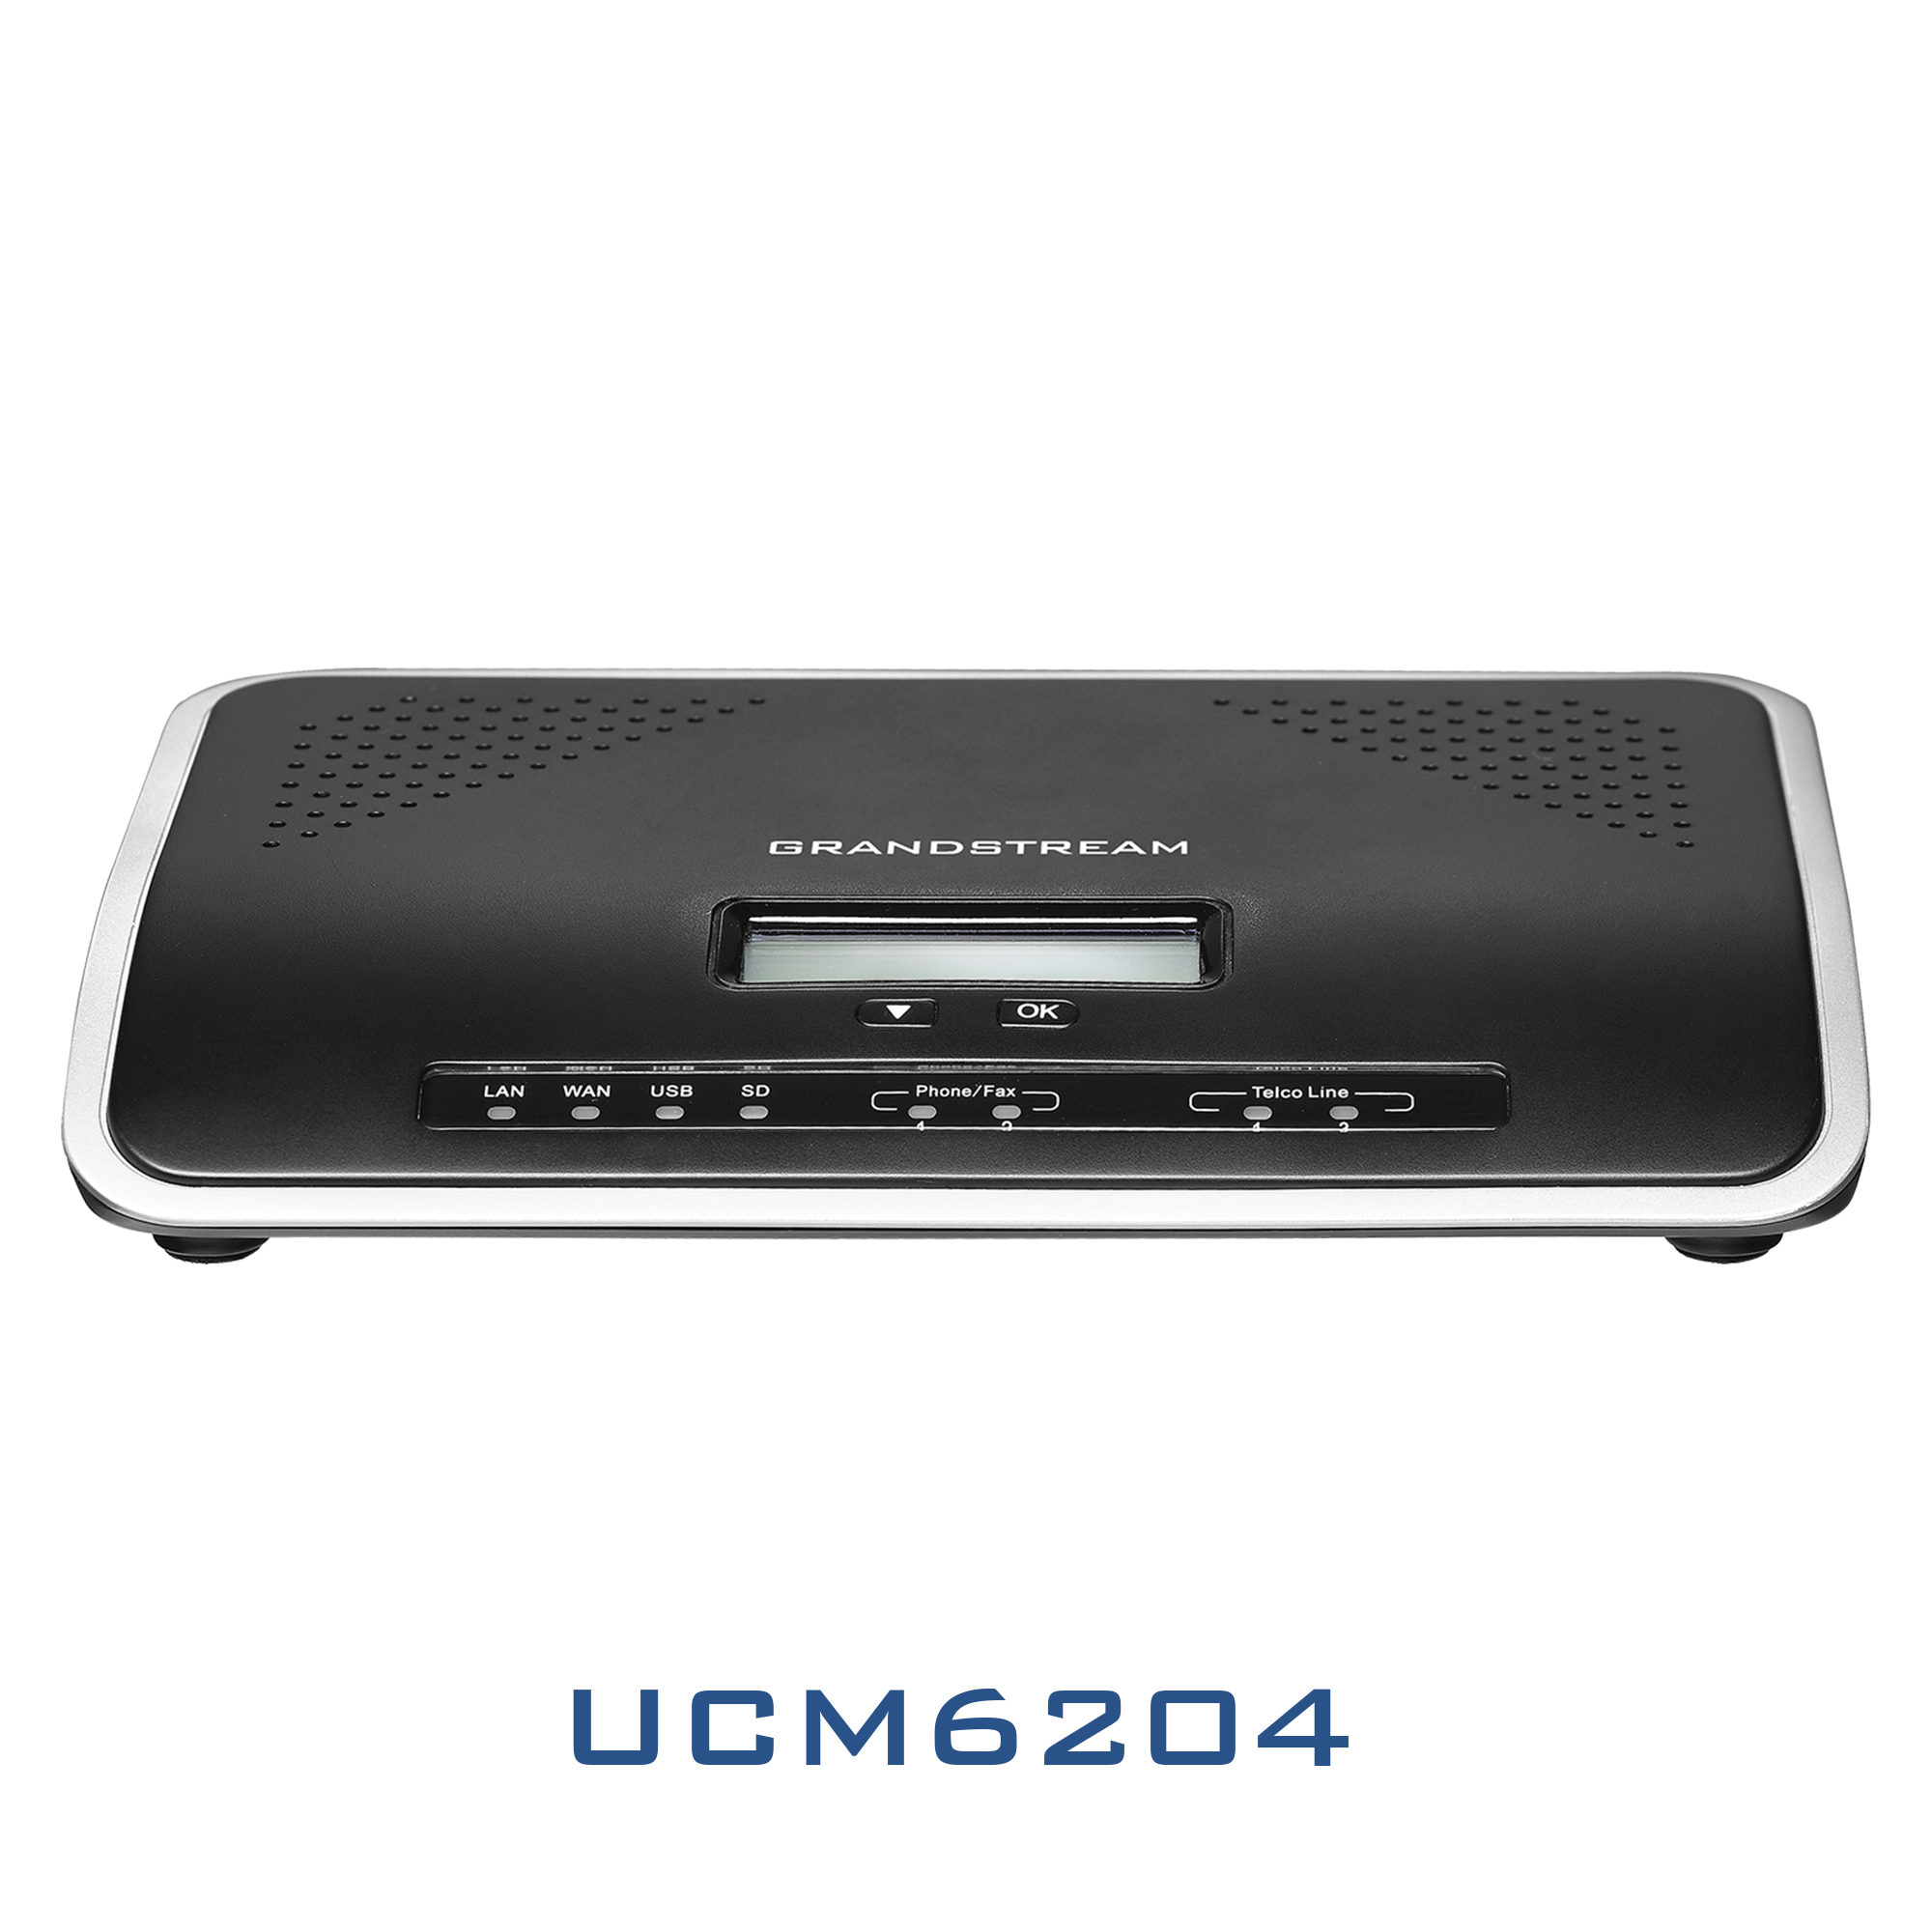 ucm6204_front_web